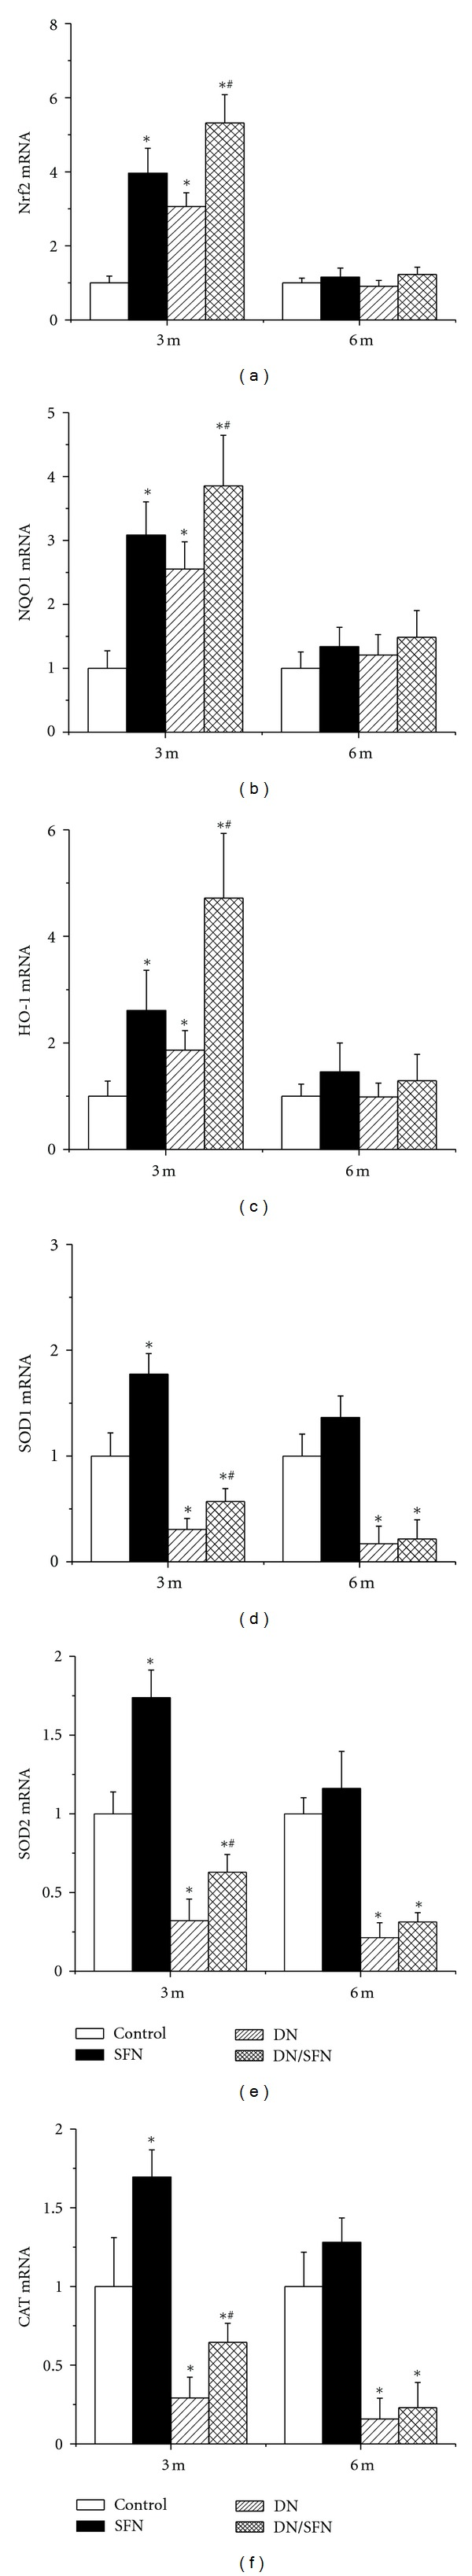 SFN upregulated renal expression of Nrf2 and its downstream genes at mRNA level. Nrf2 (a) and its downstream genes, NQO1 (b), HO-1 (c), SOD1 (d), SOD2 (e), and CAT (f) expression at mRNA level were detected by RT-PCR. Data were presented as means ± SD ( n = 6 at least). (* P